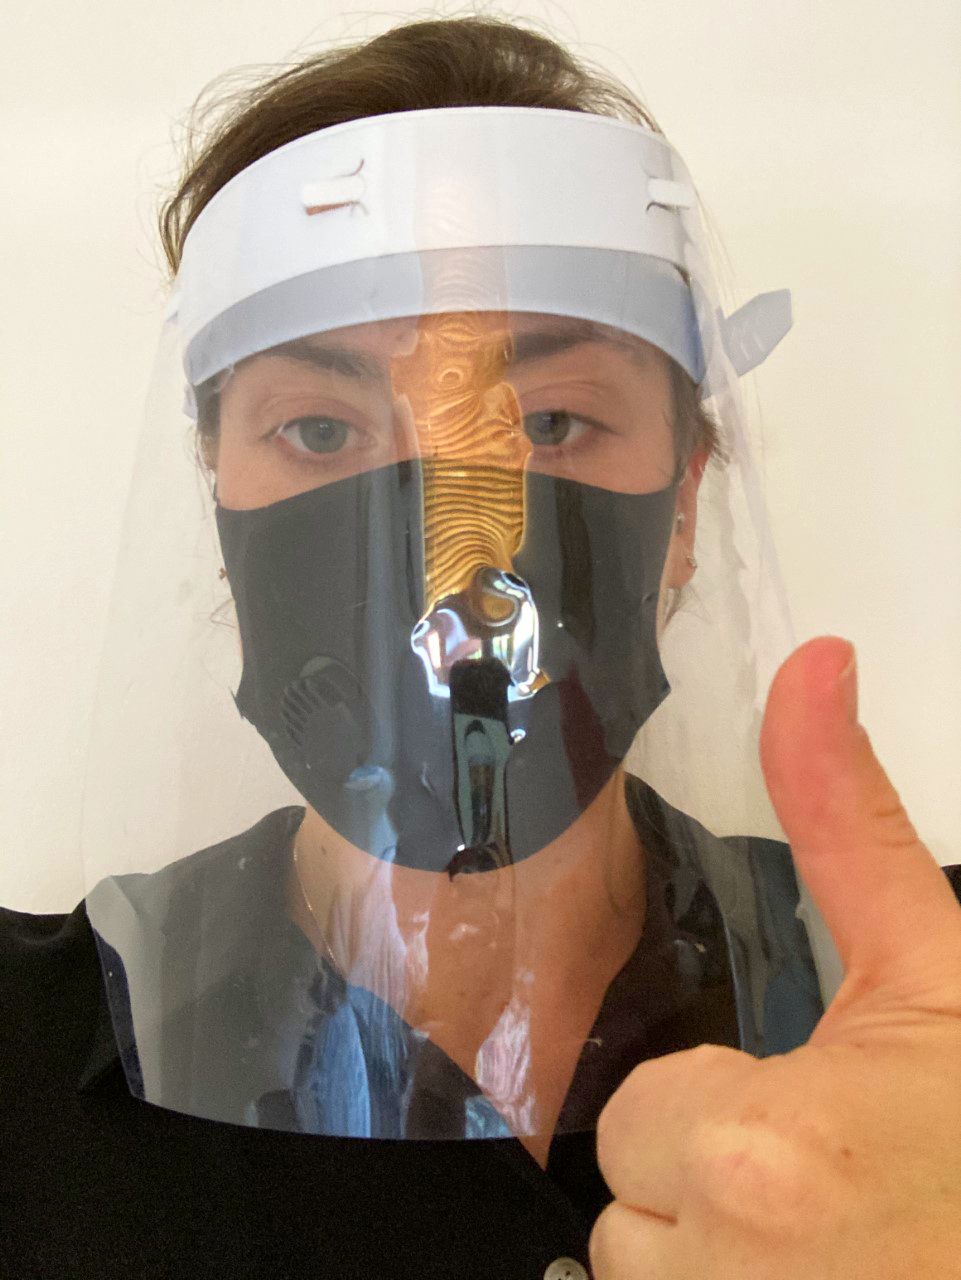 A makeup artist in full PPE for covid protection.